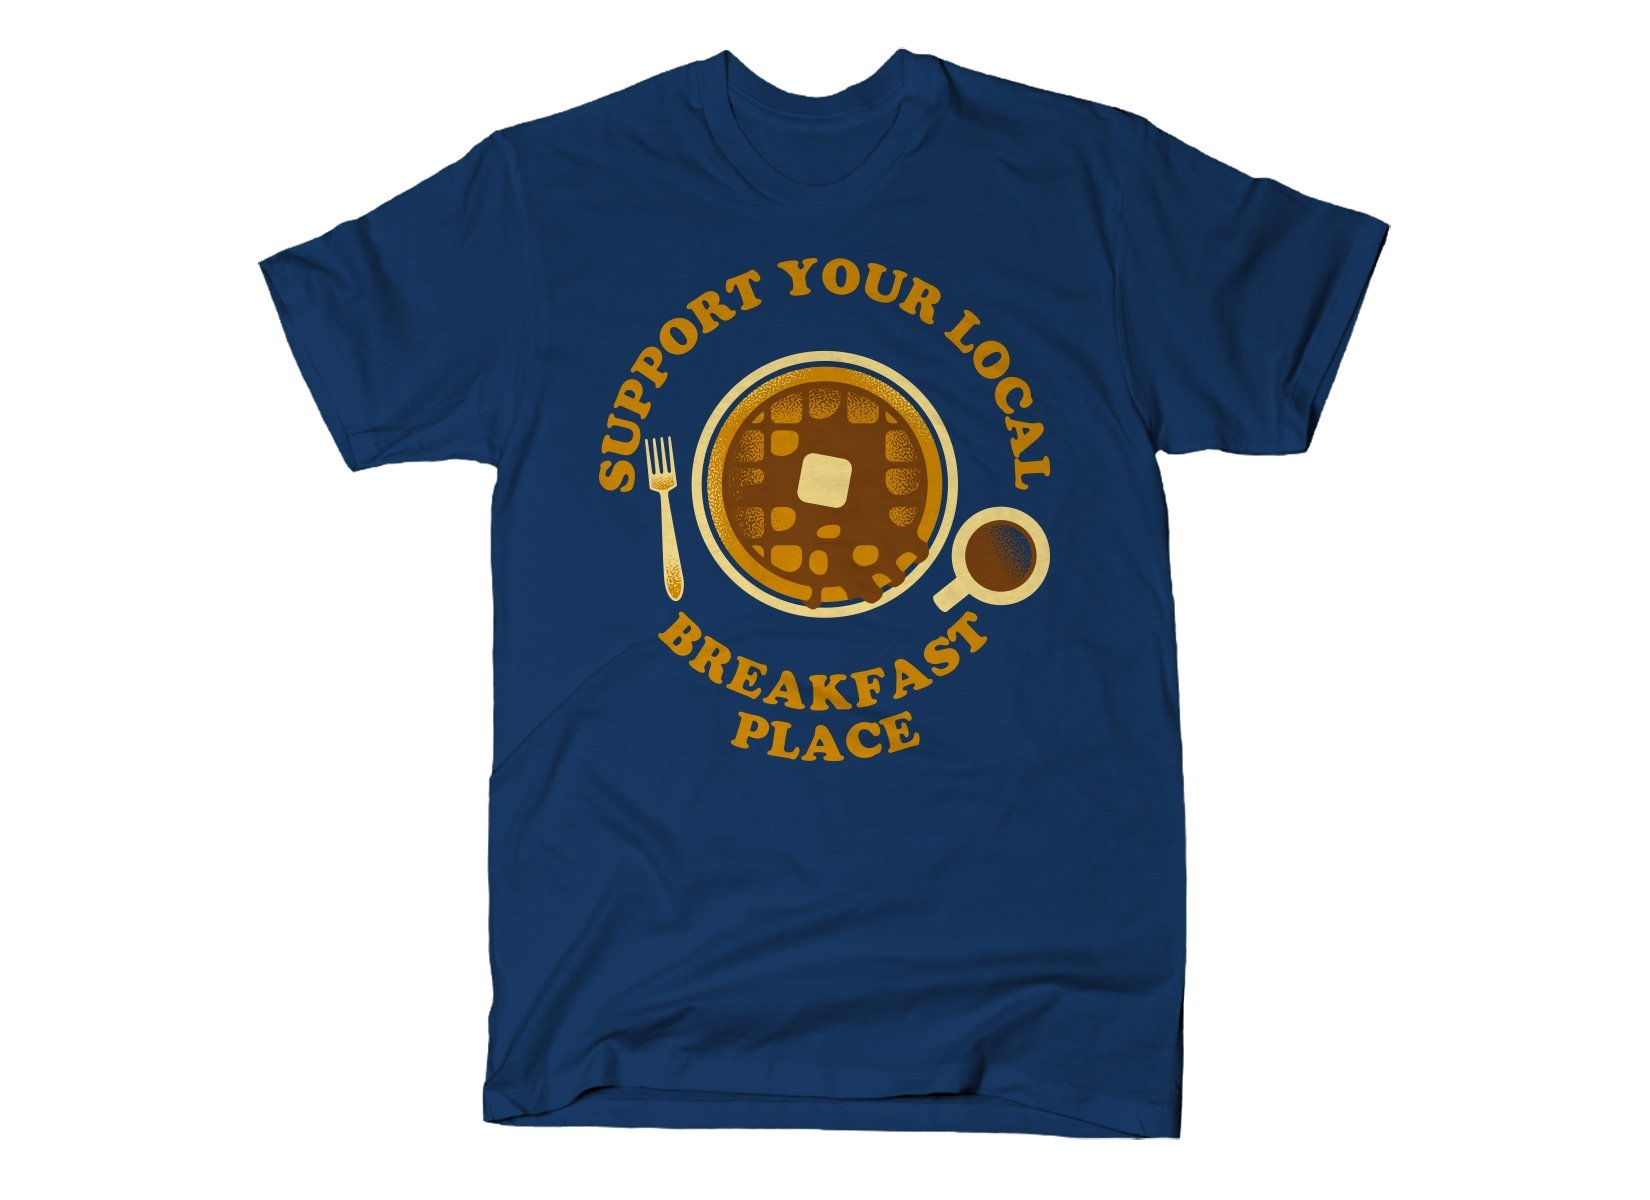 Support Your Local Breakfast Place on Mens T-Shirt